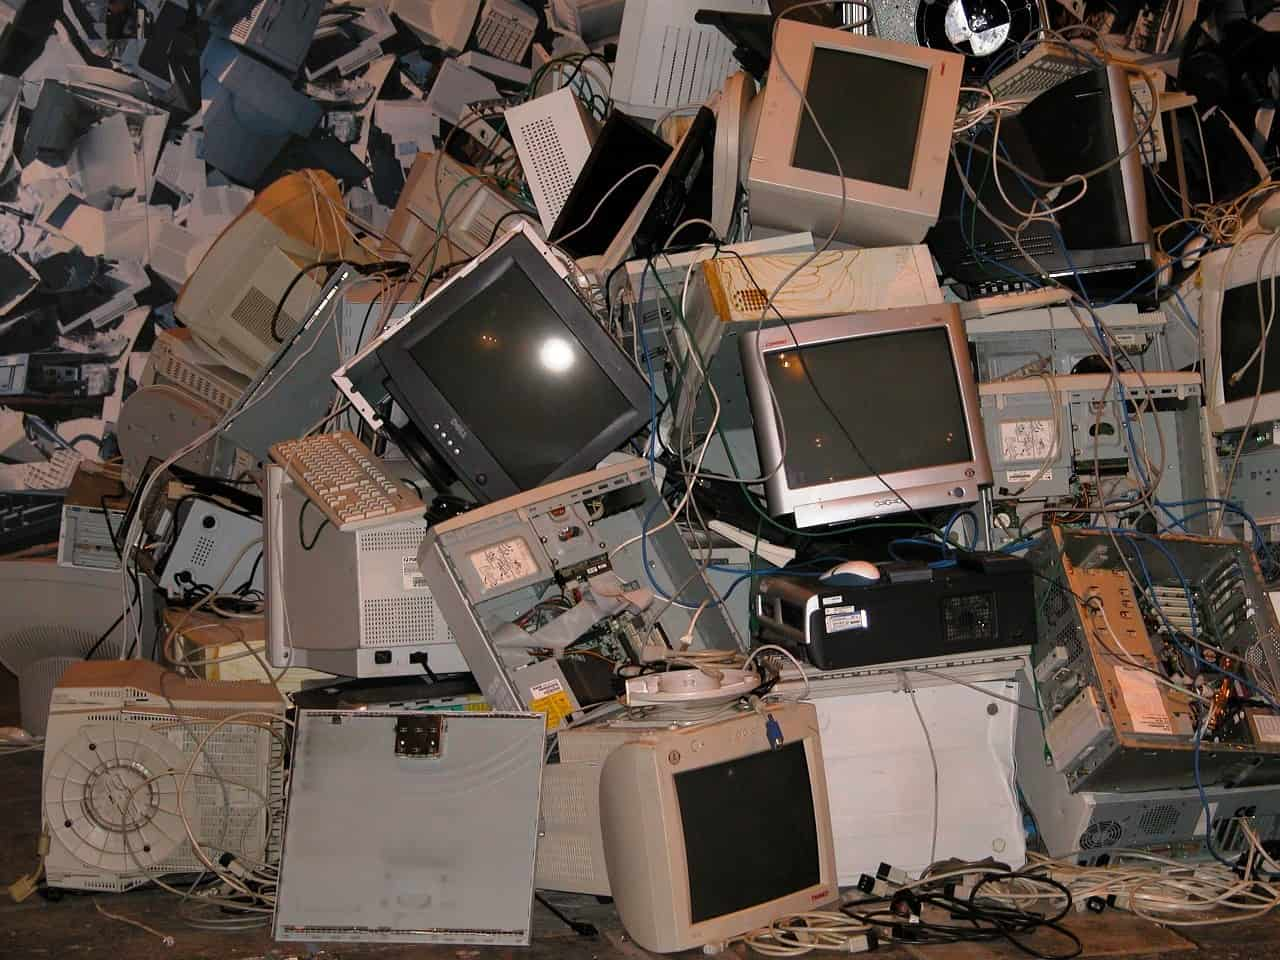 3 Ways To Know Your Data Is Secure When Disposing Of Old Electronics